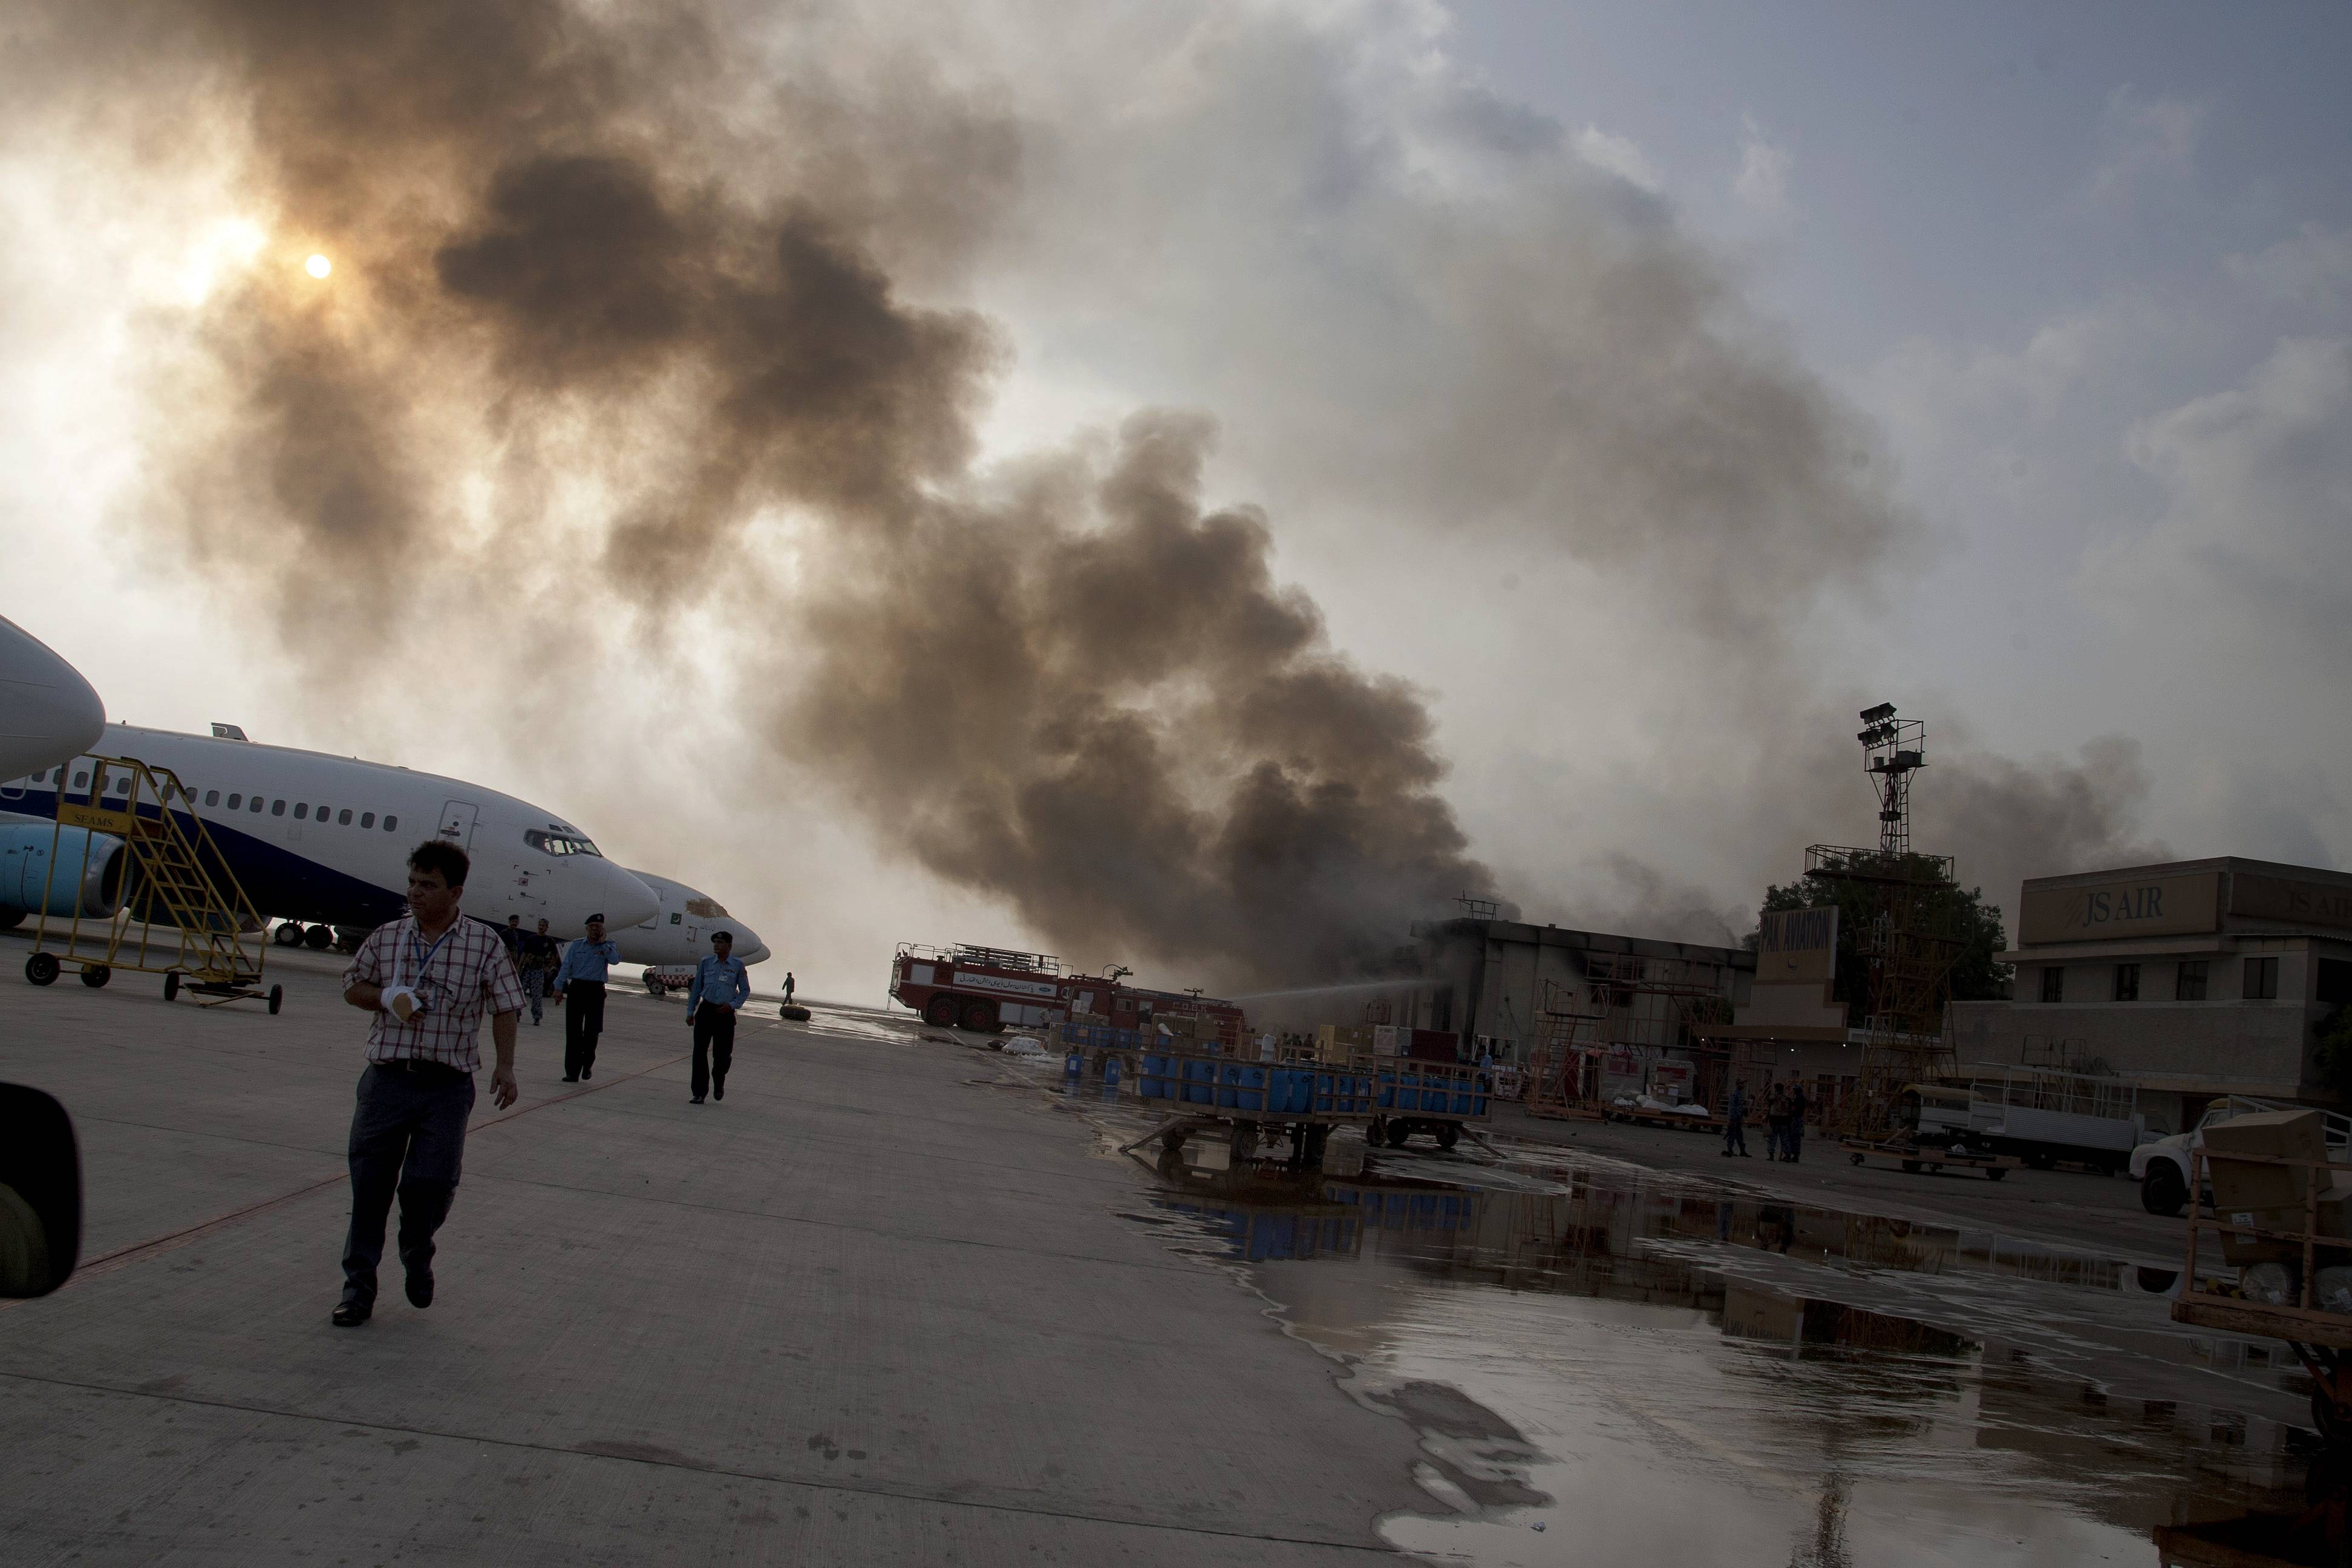 Smoke rises above Karachi airport terminal Monday, June 9, 2014 in Pakistan. Gunmen disguised as police guards attacked the terminal with machine guns and a rocket launcher during a five-hour siege that killed 13 people as explosions echoed into the night, while security forces retaliated and killed all the attackers, officials said Monday.